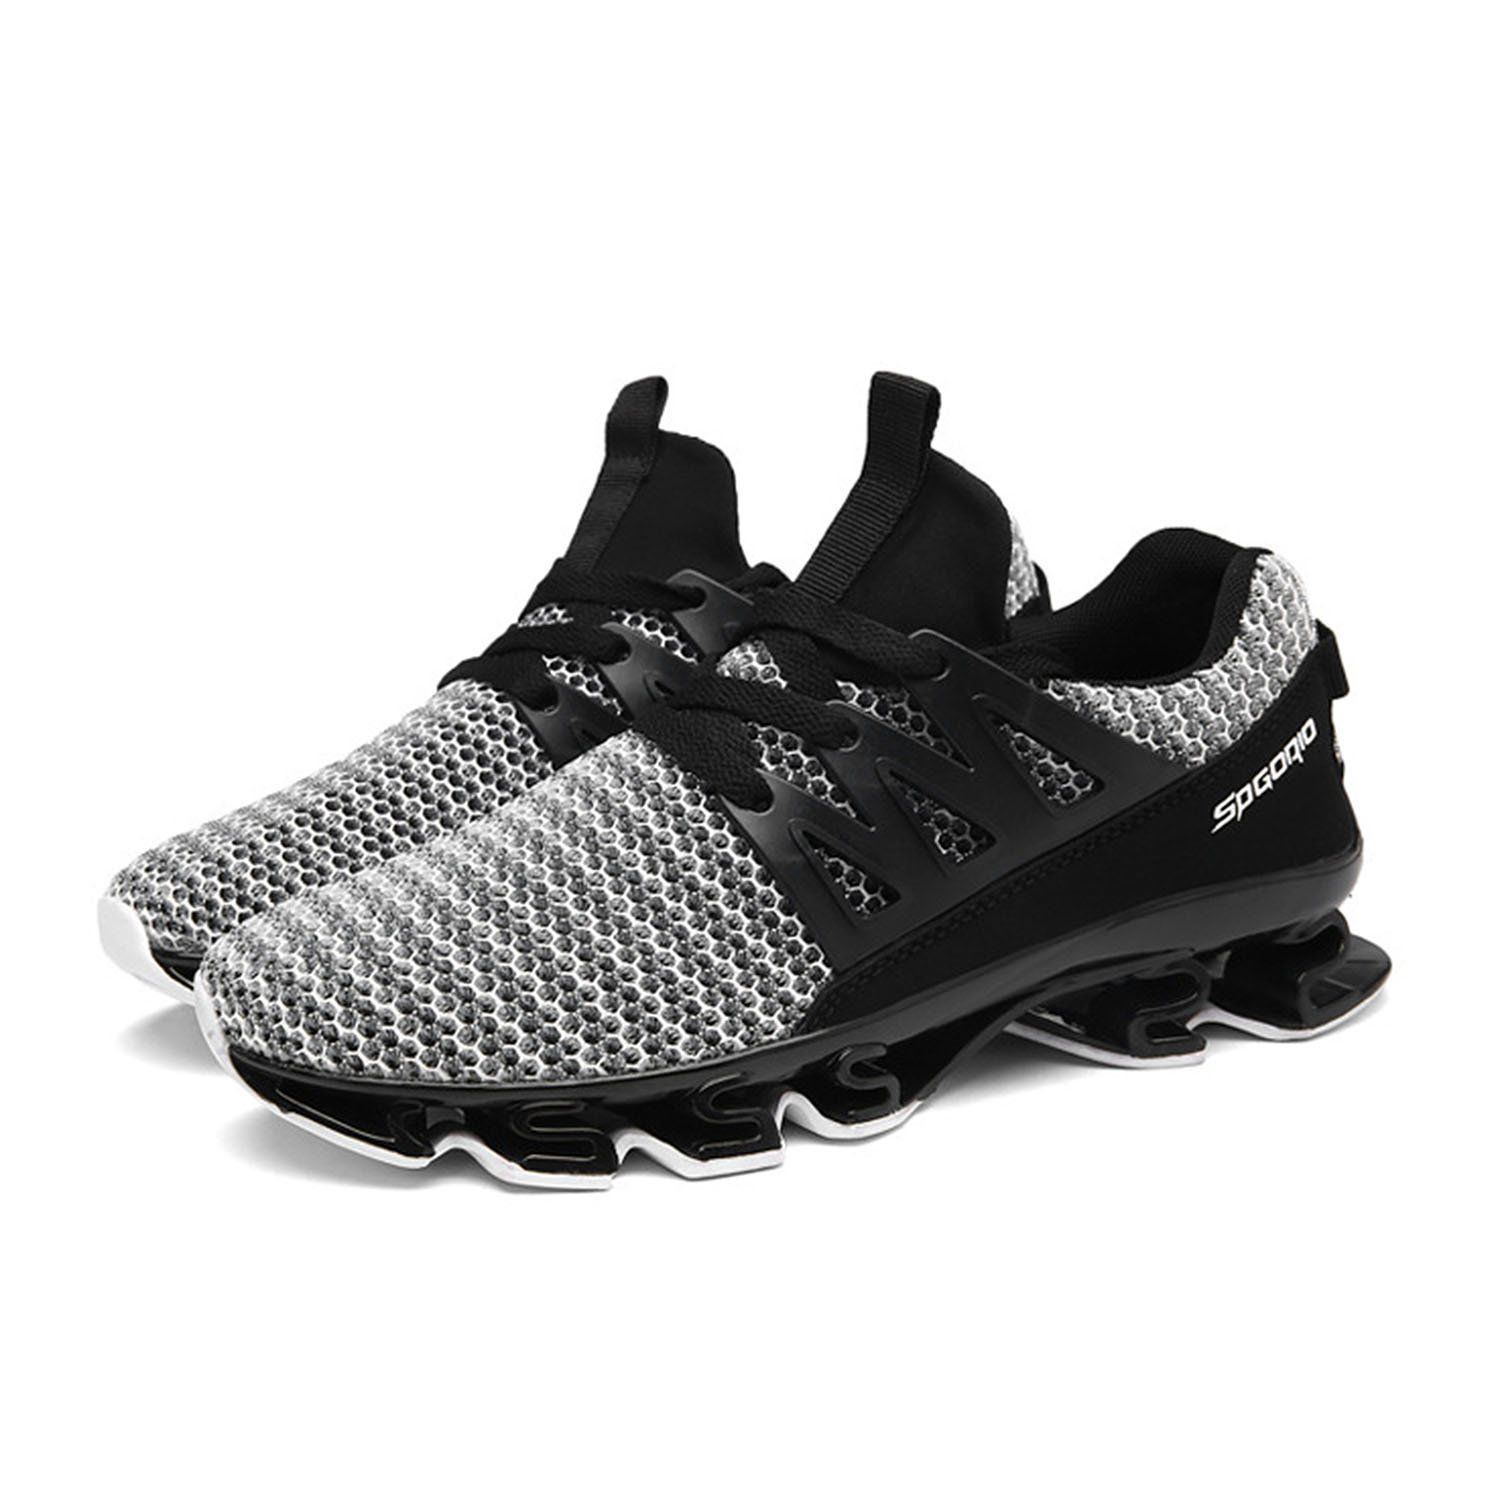 Men/'s Sneakers Mesh Breathable Comfortable Outdoor Training Running Shoes Size